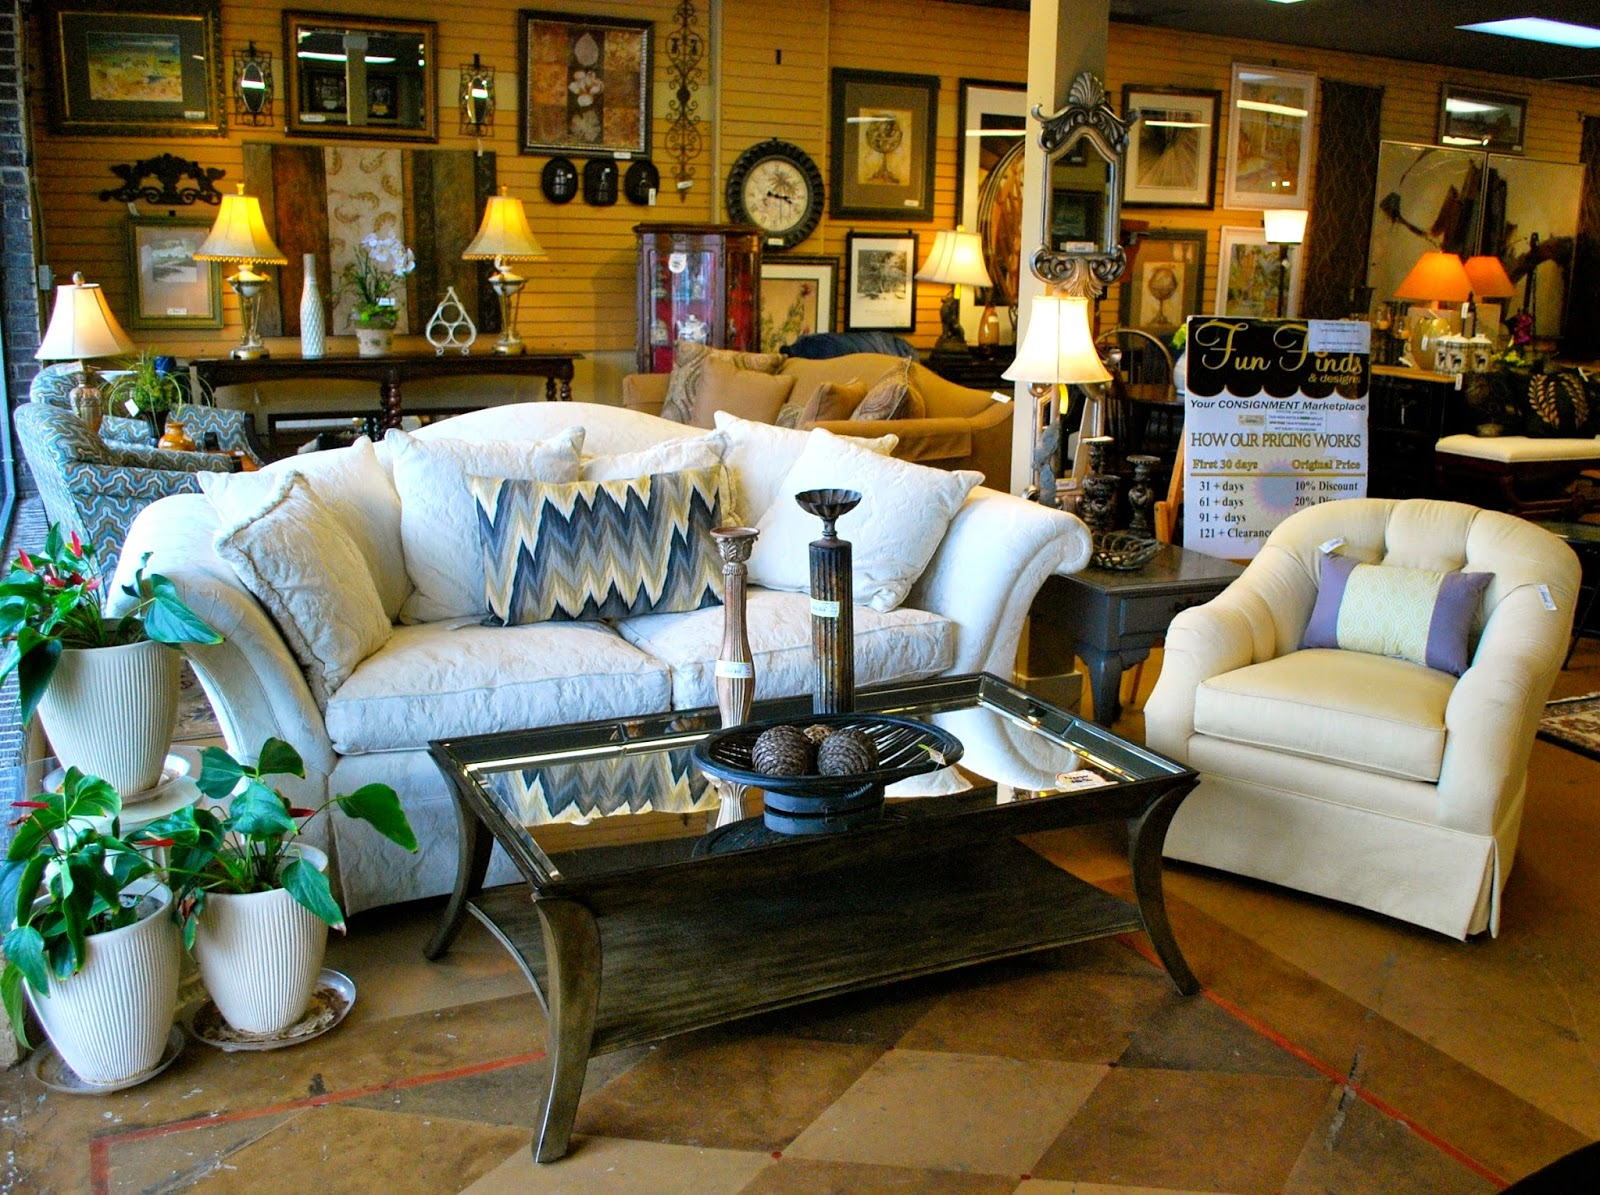 Furniture for less luxury home furnishings for less at fun finds and designs 100 furniture for Home furniture for less